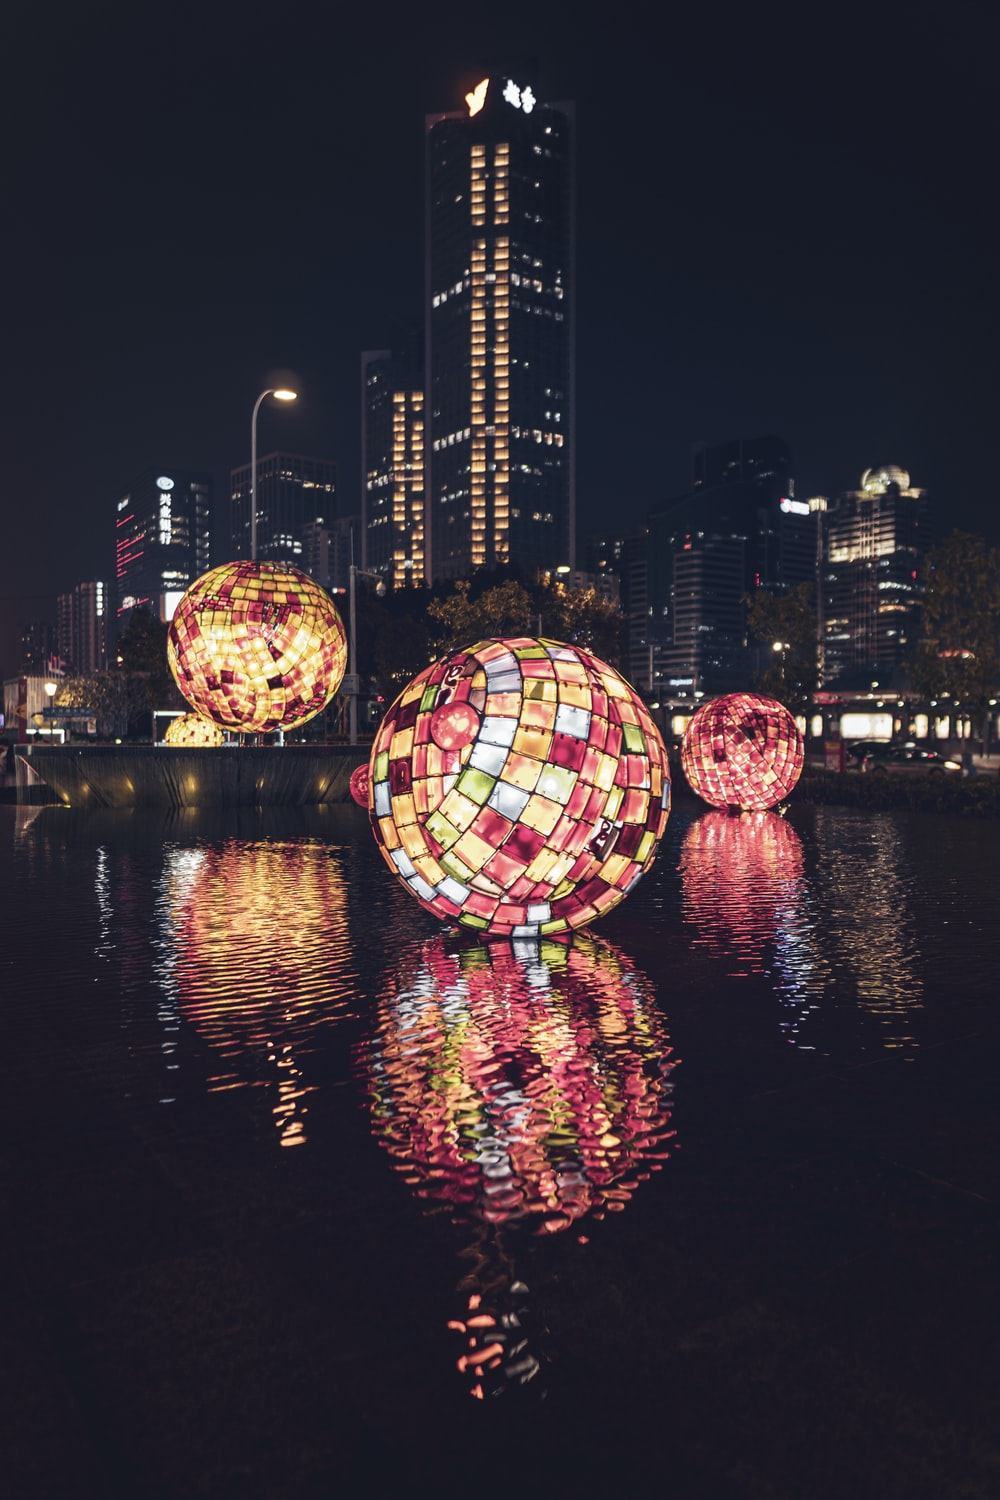 decorative balls with lights floating on body of water at the city during nighttime